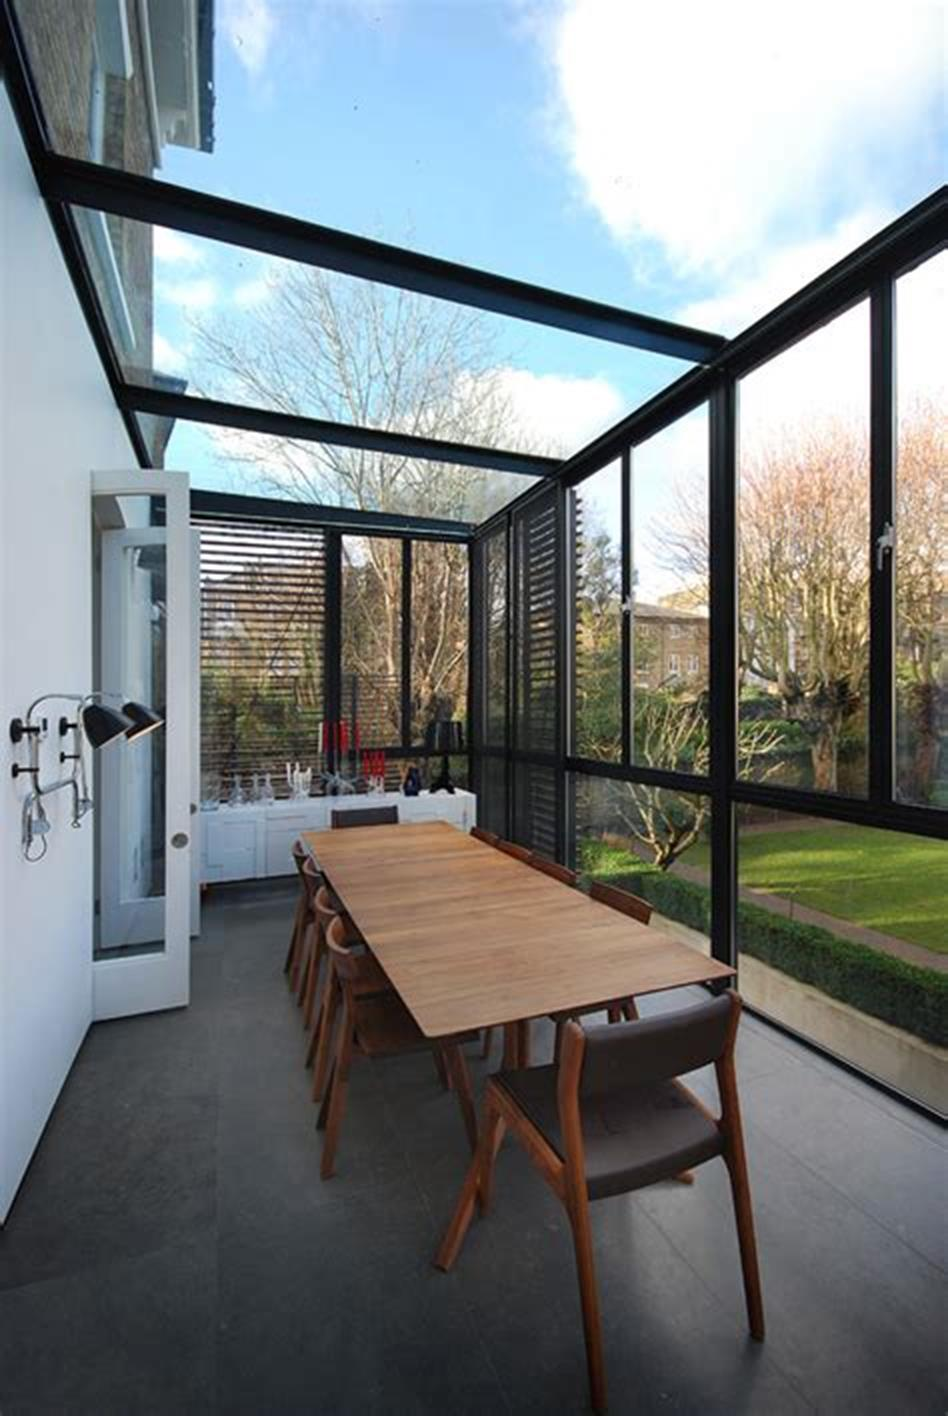 50 Most Popular Affordable Sunroom Design Ideas on a Budget 14